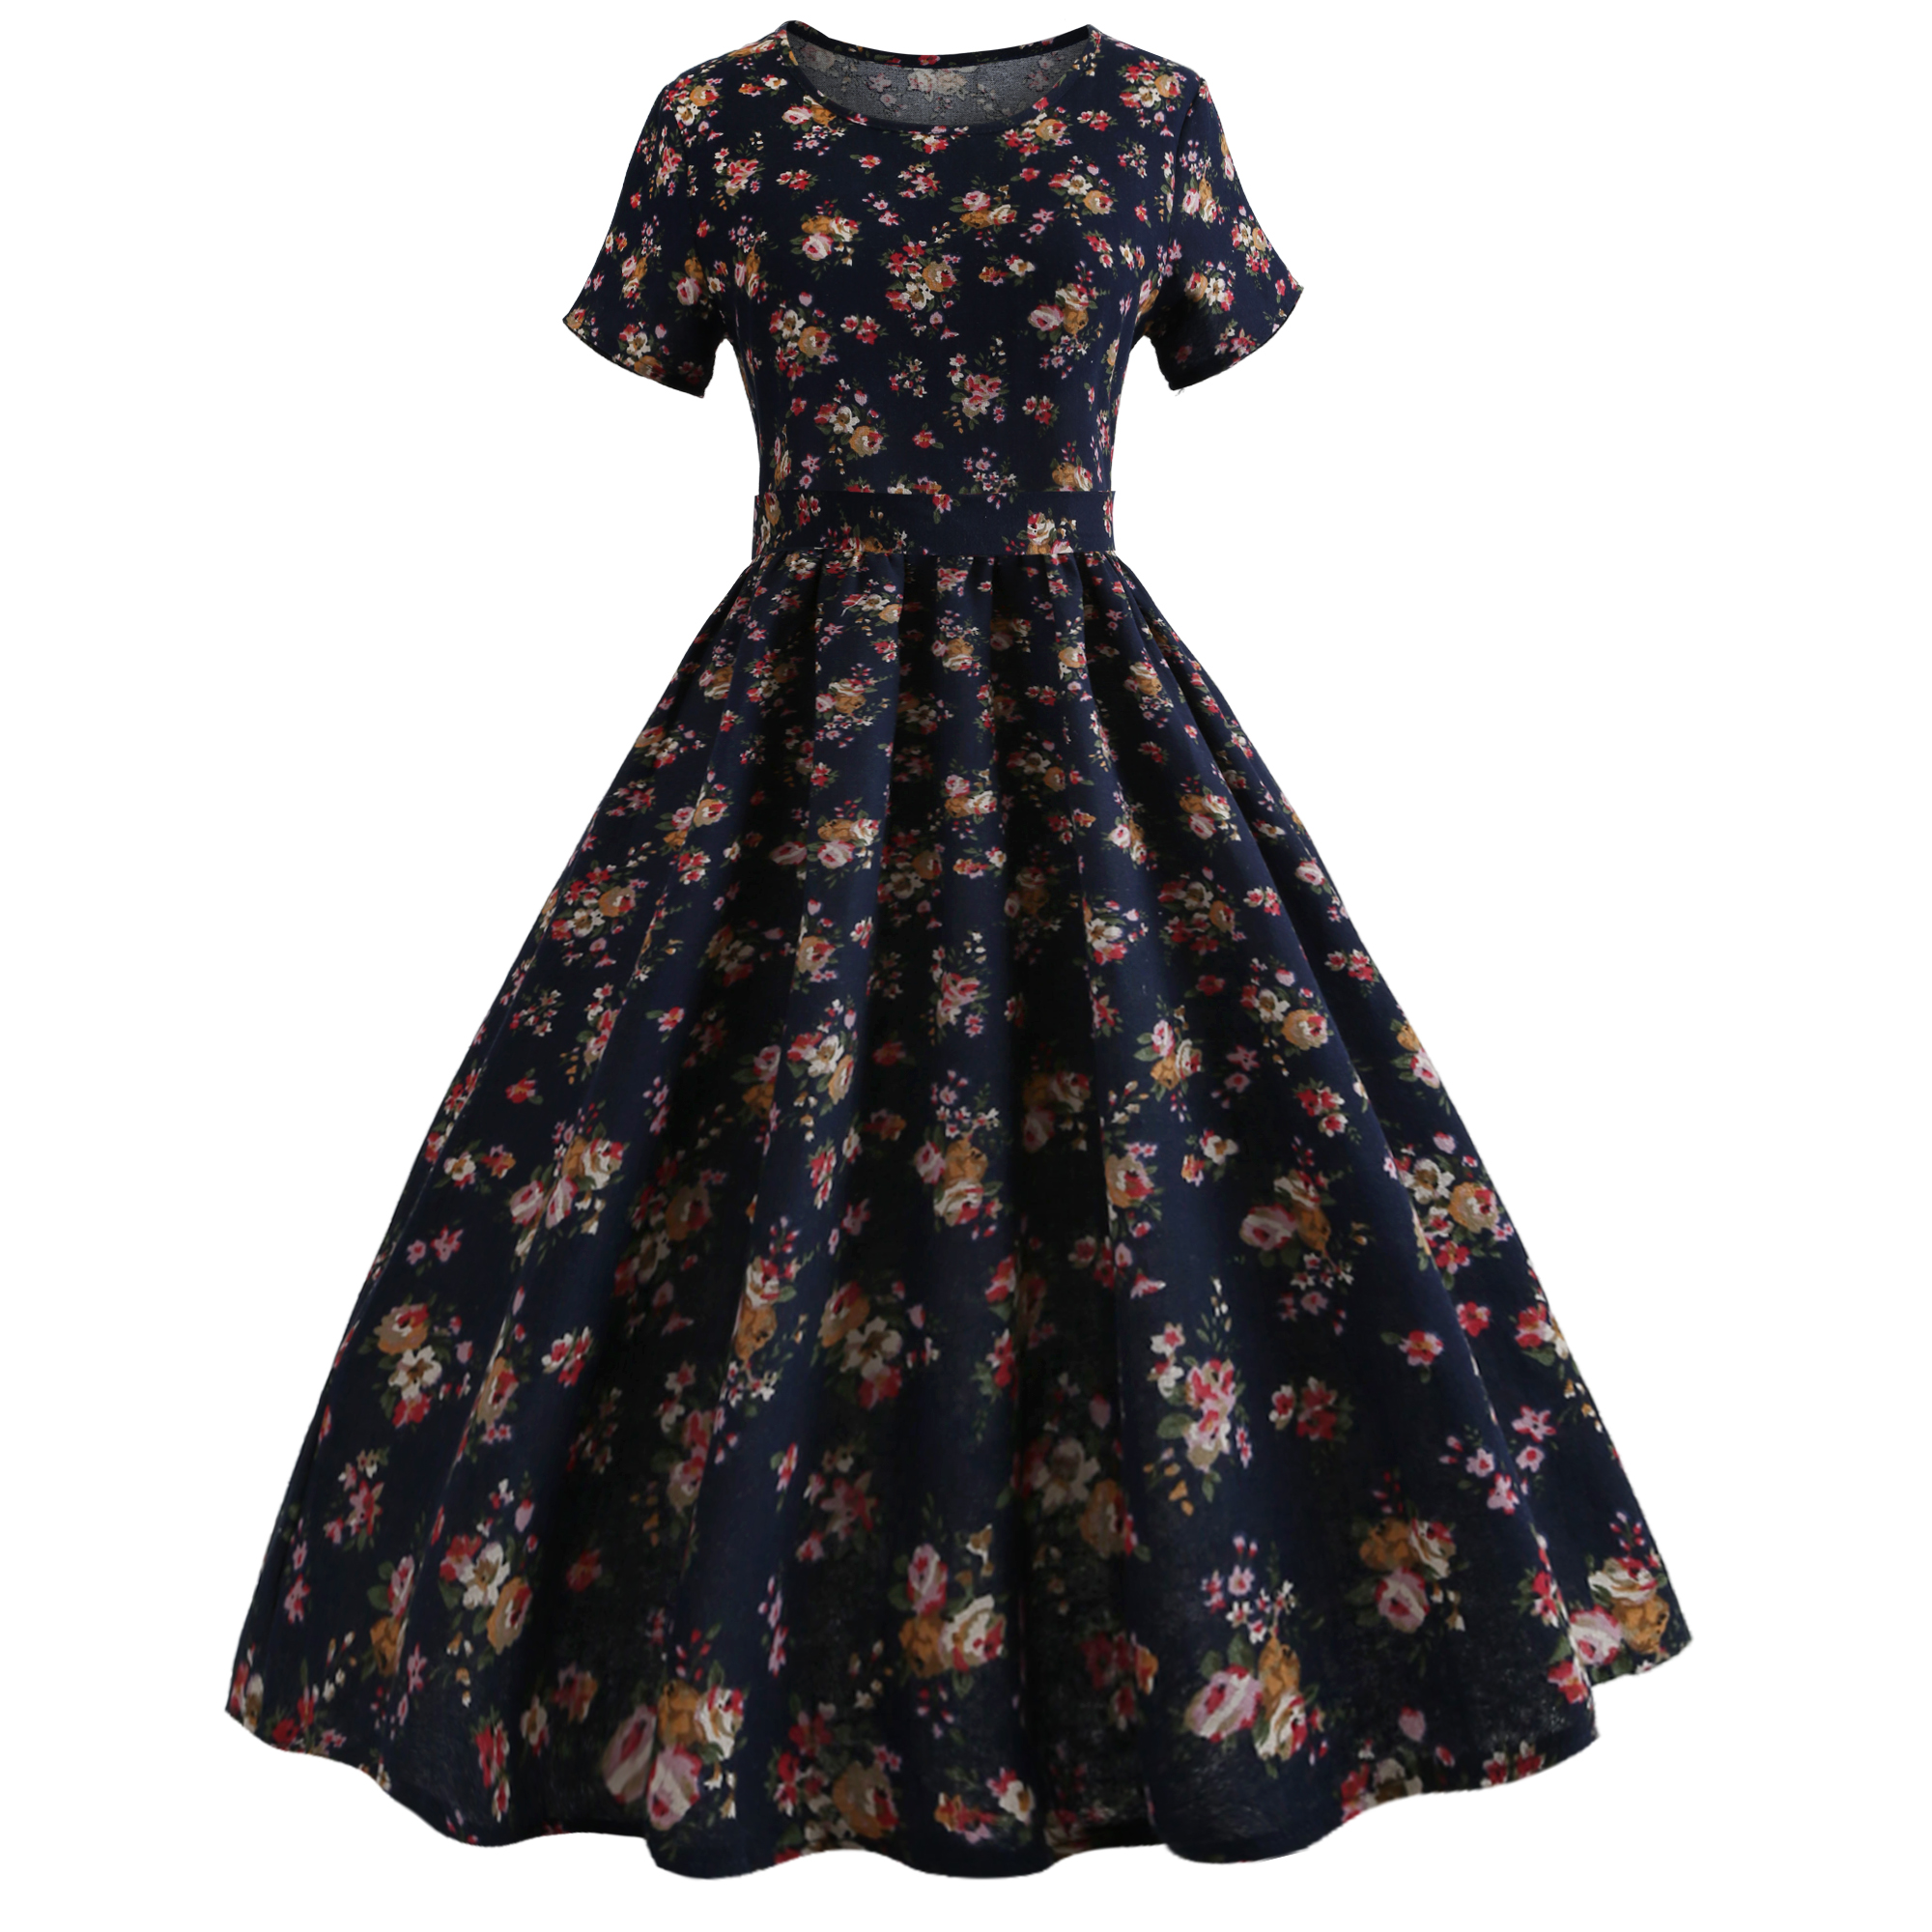 951dc66f413 2018 New Cotton Linen Summer Dresses for Women Vintage 50s 60s Robe Retro  Pin Up Rockabilly Elegant Casual Party Red Midi Dress